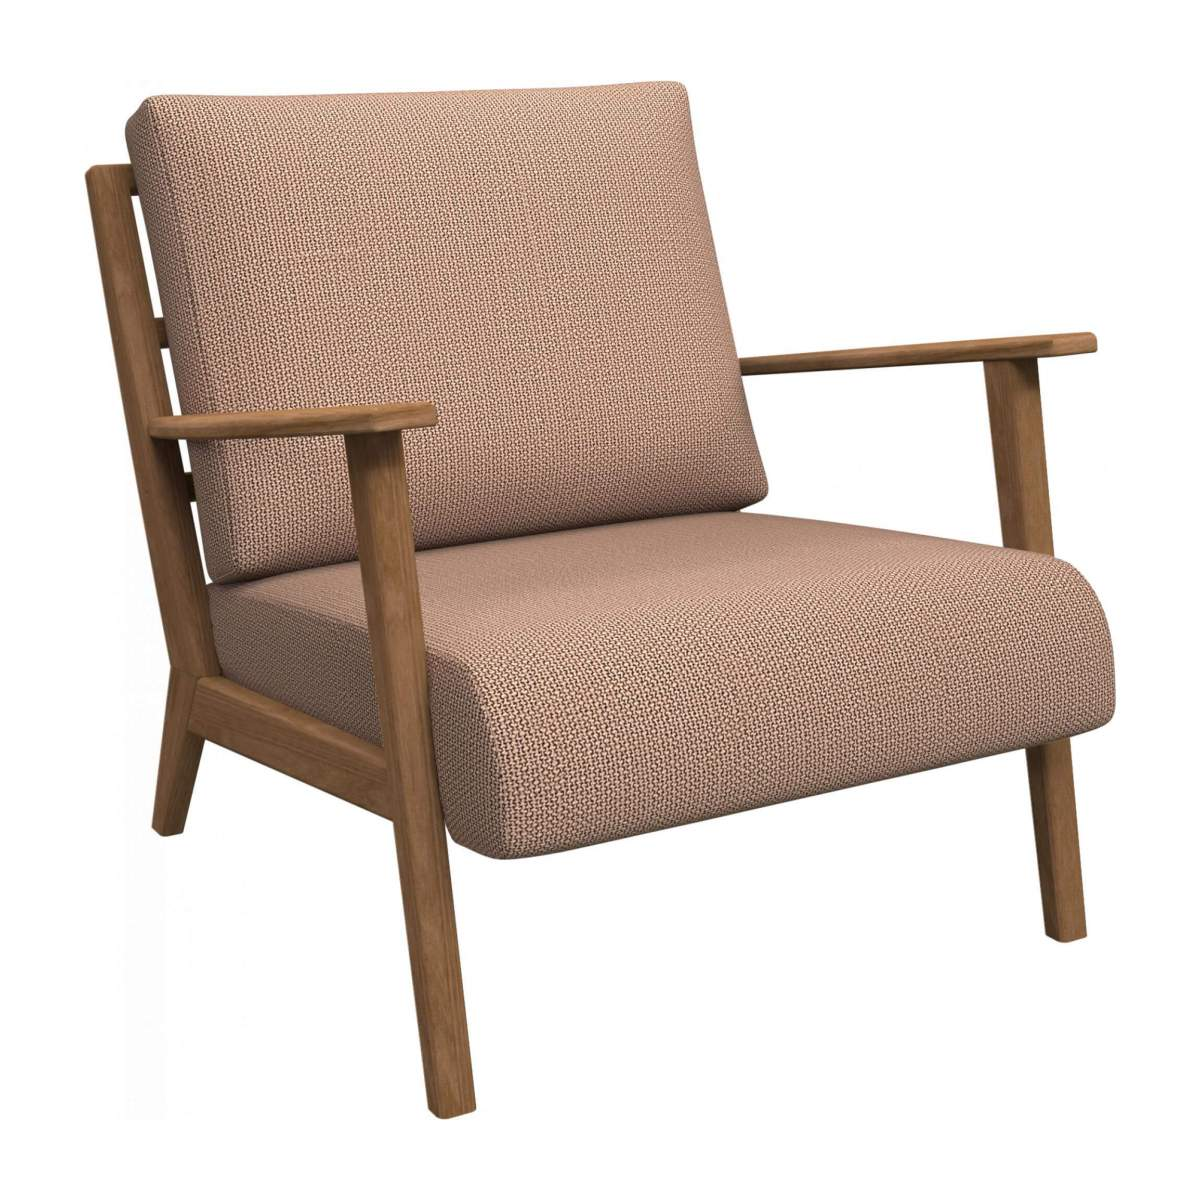 Armchair in Fasoli fabric, jatoba brown n°3